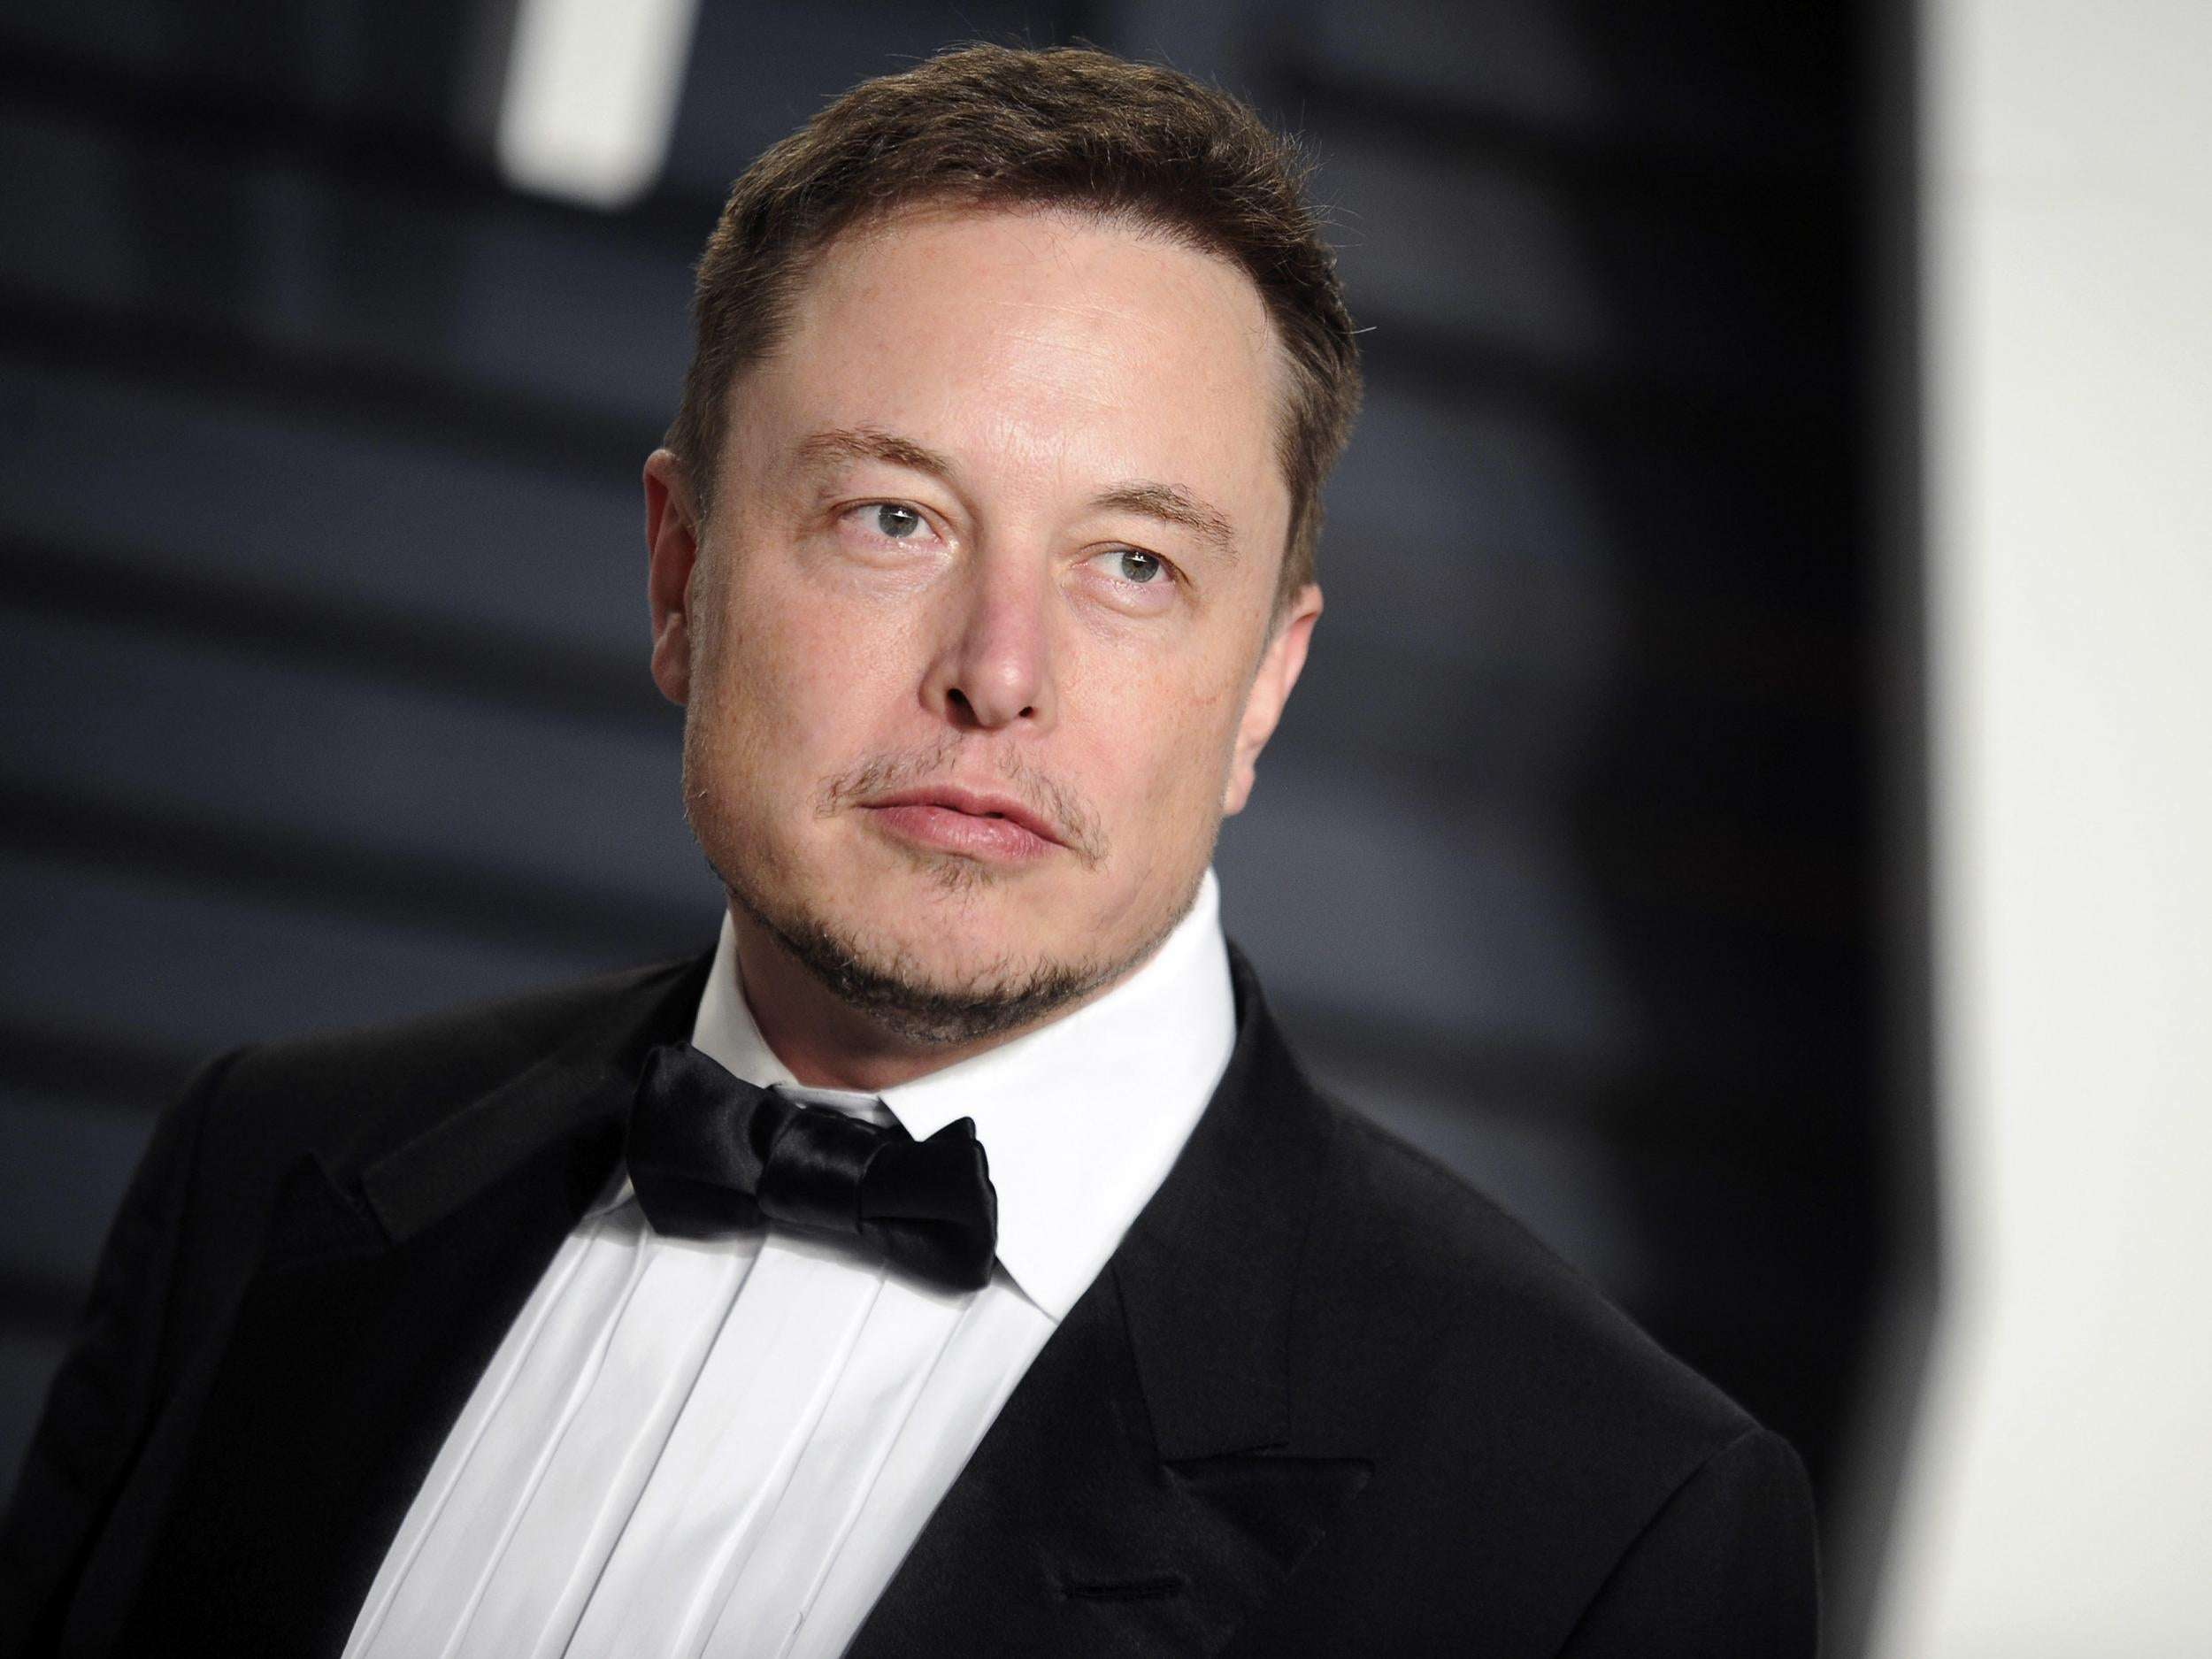 elon musk net worth elon musks companies college degree nationality and more 600eb049d73ae Elon Musk Net Worth: Elon Musk's Companies, College degree, Nationality and More